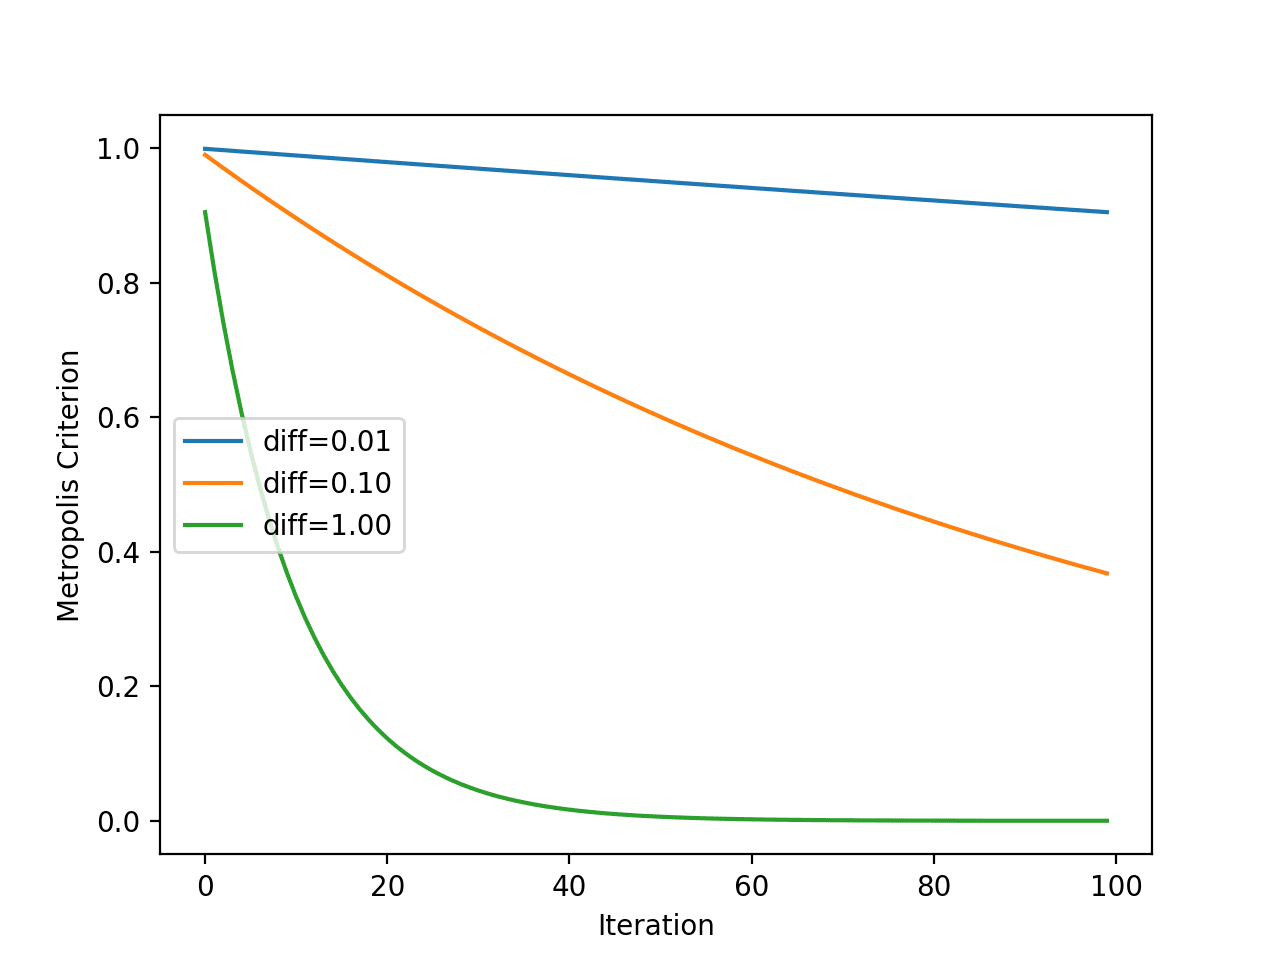 Line Plot of Metropolis Acceptance Criterion vs. Algorithm Iteration for Simulated Annealing